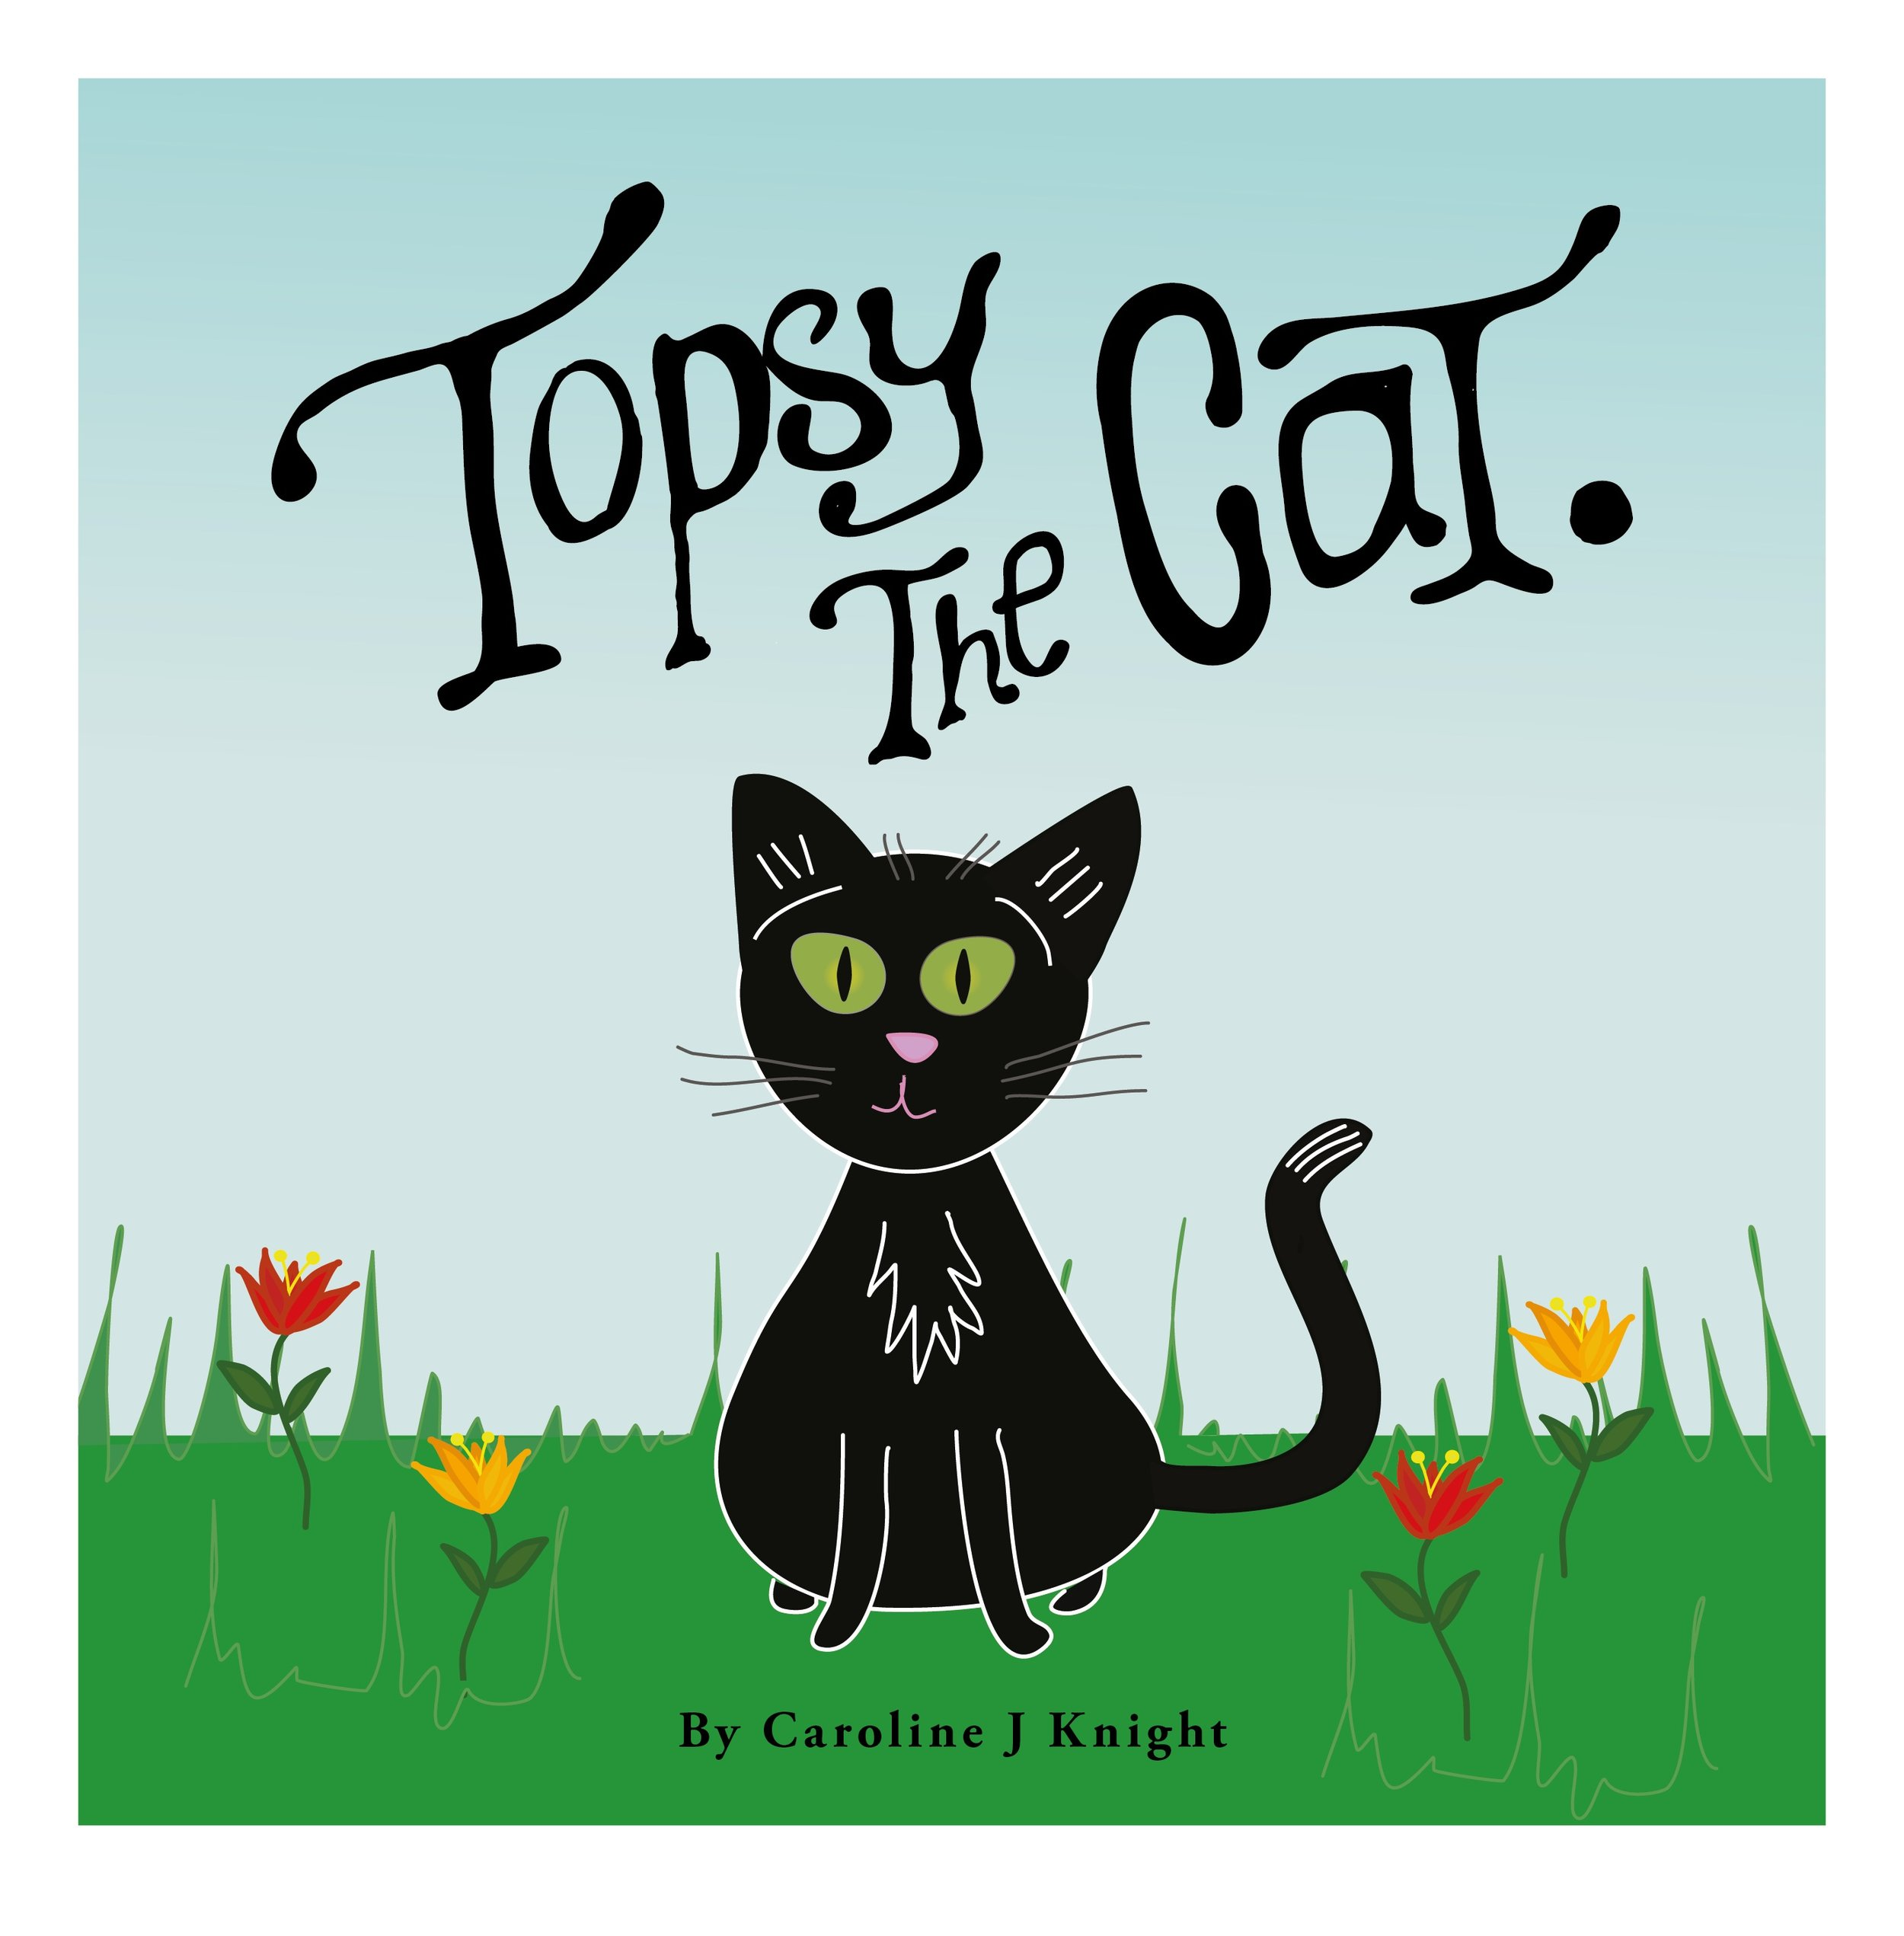 Topsy The Cat proof 6 of 1.jpg